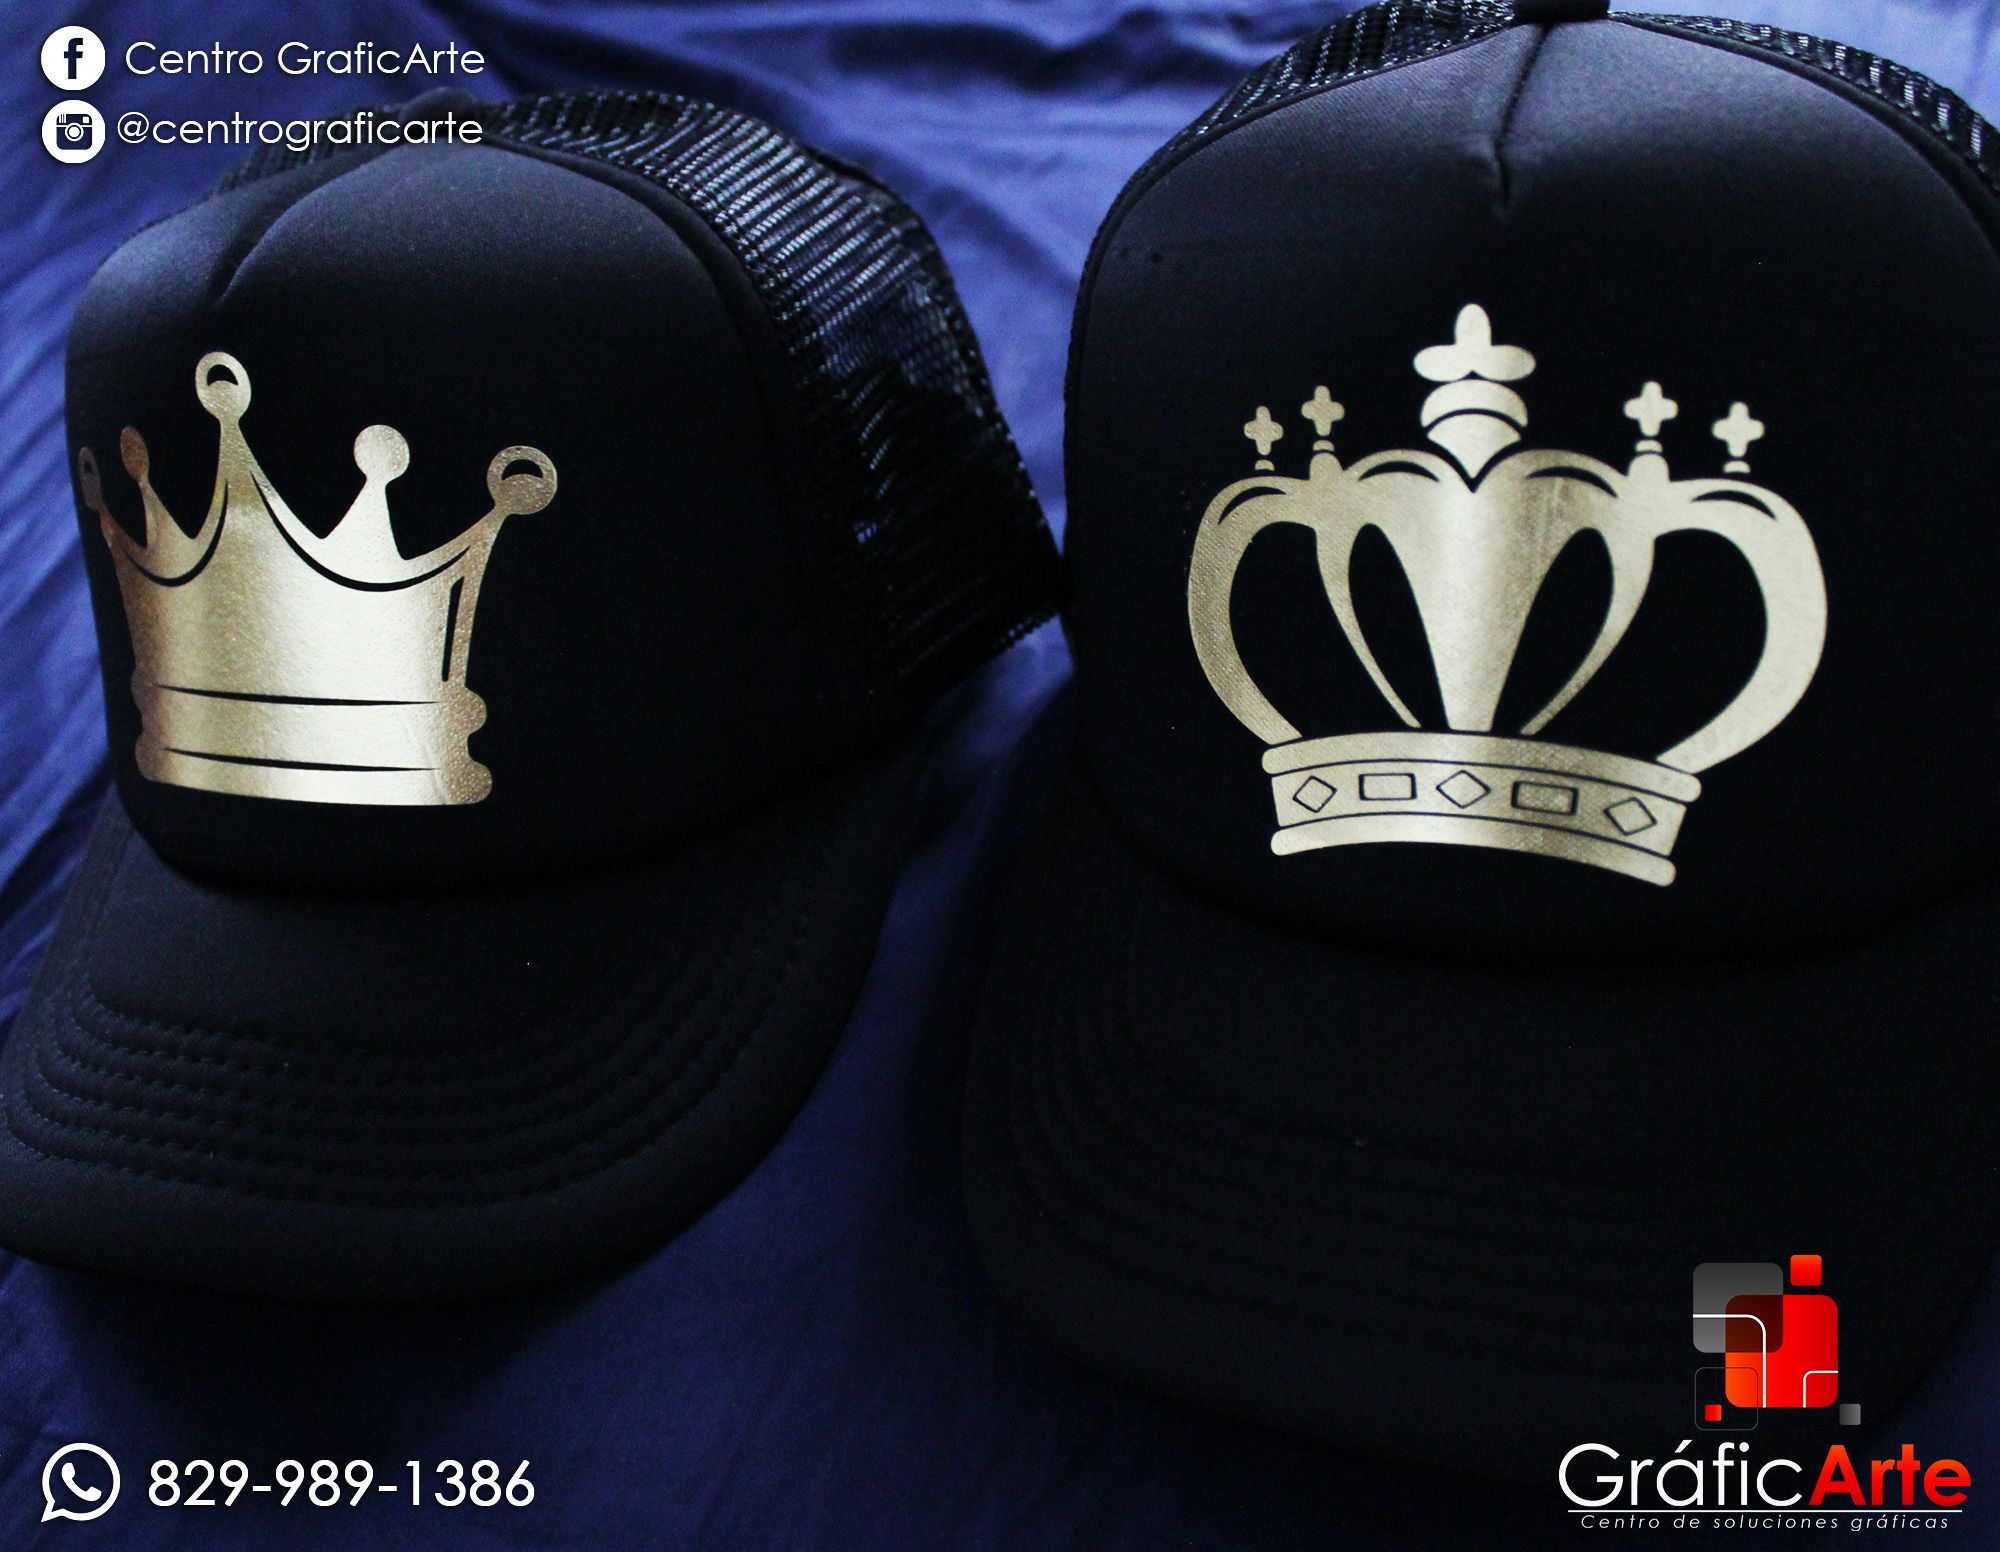 51dbb3ea7 King and Queen  Gorras personalizado.  couple  parejas  pareja  king ...